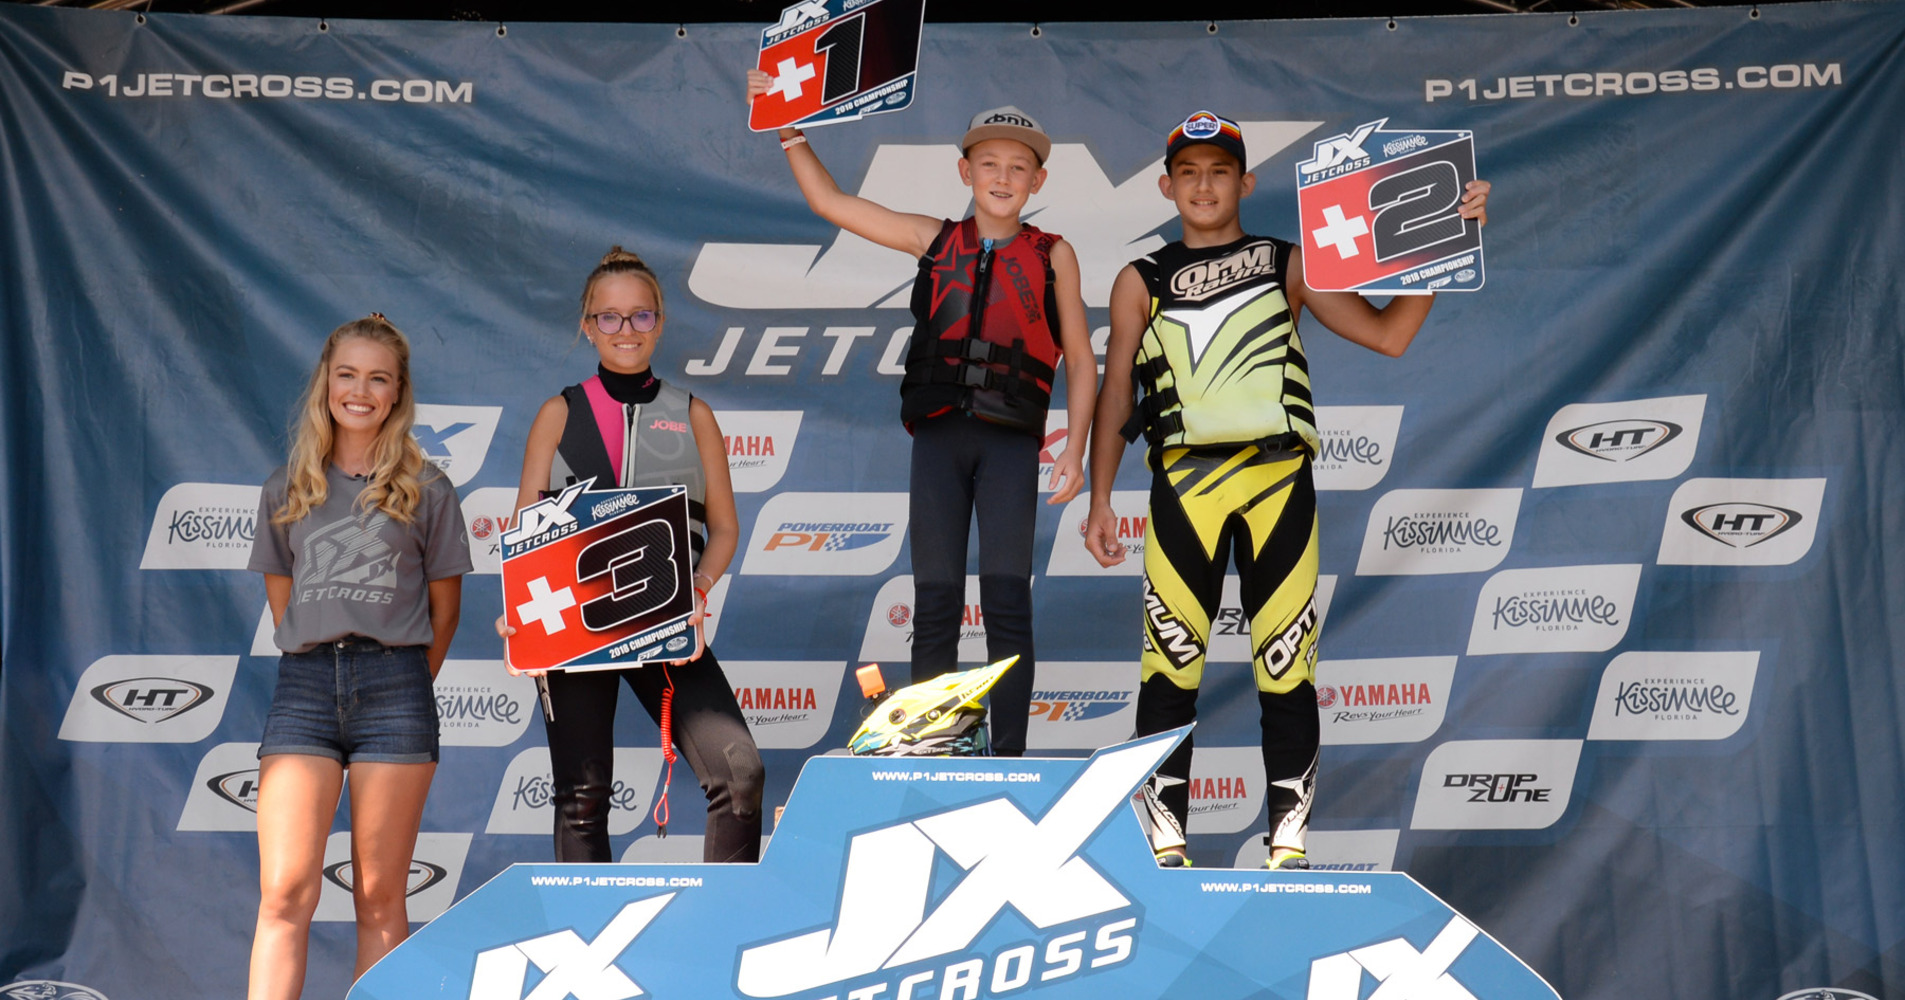 The future of the sport with the Am Ski Junior JX3 class : Grand Prix victory and overall Junior Cup winner Mathéo Pichon, following by Baptiste Calmels both from France, and Lucie Mischler from Switzerland